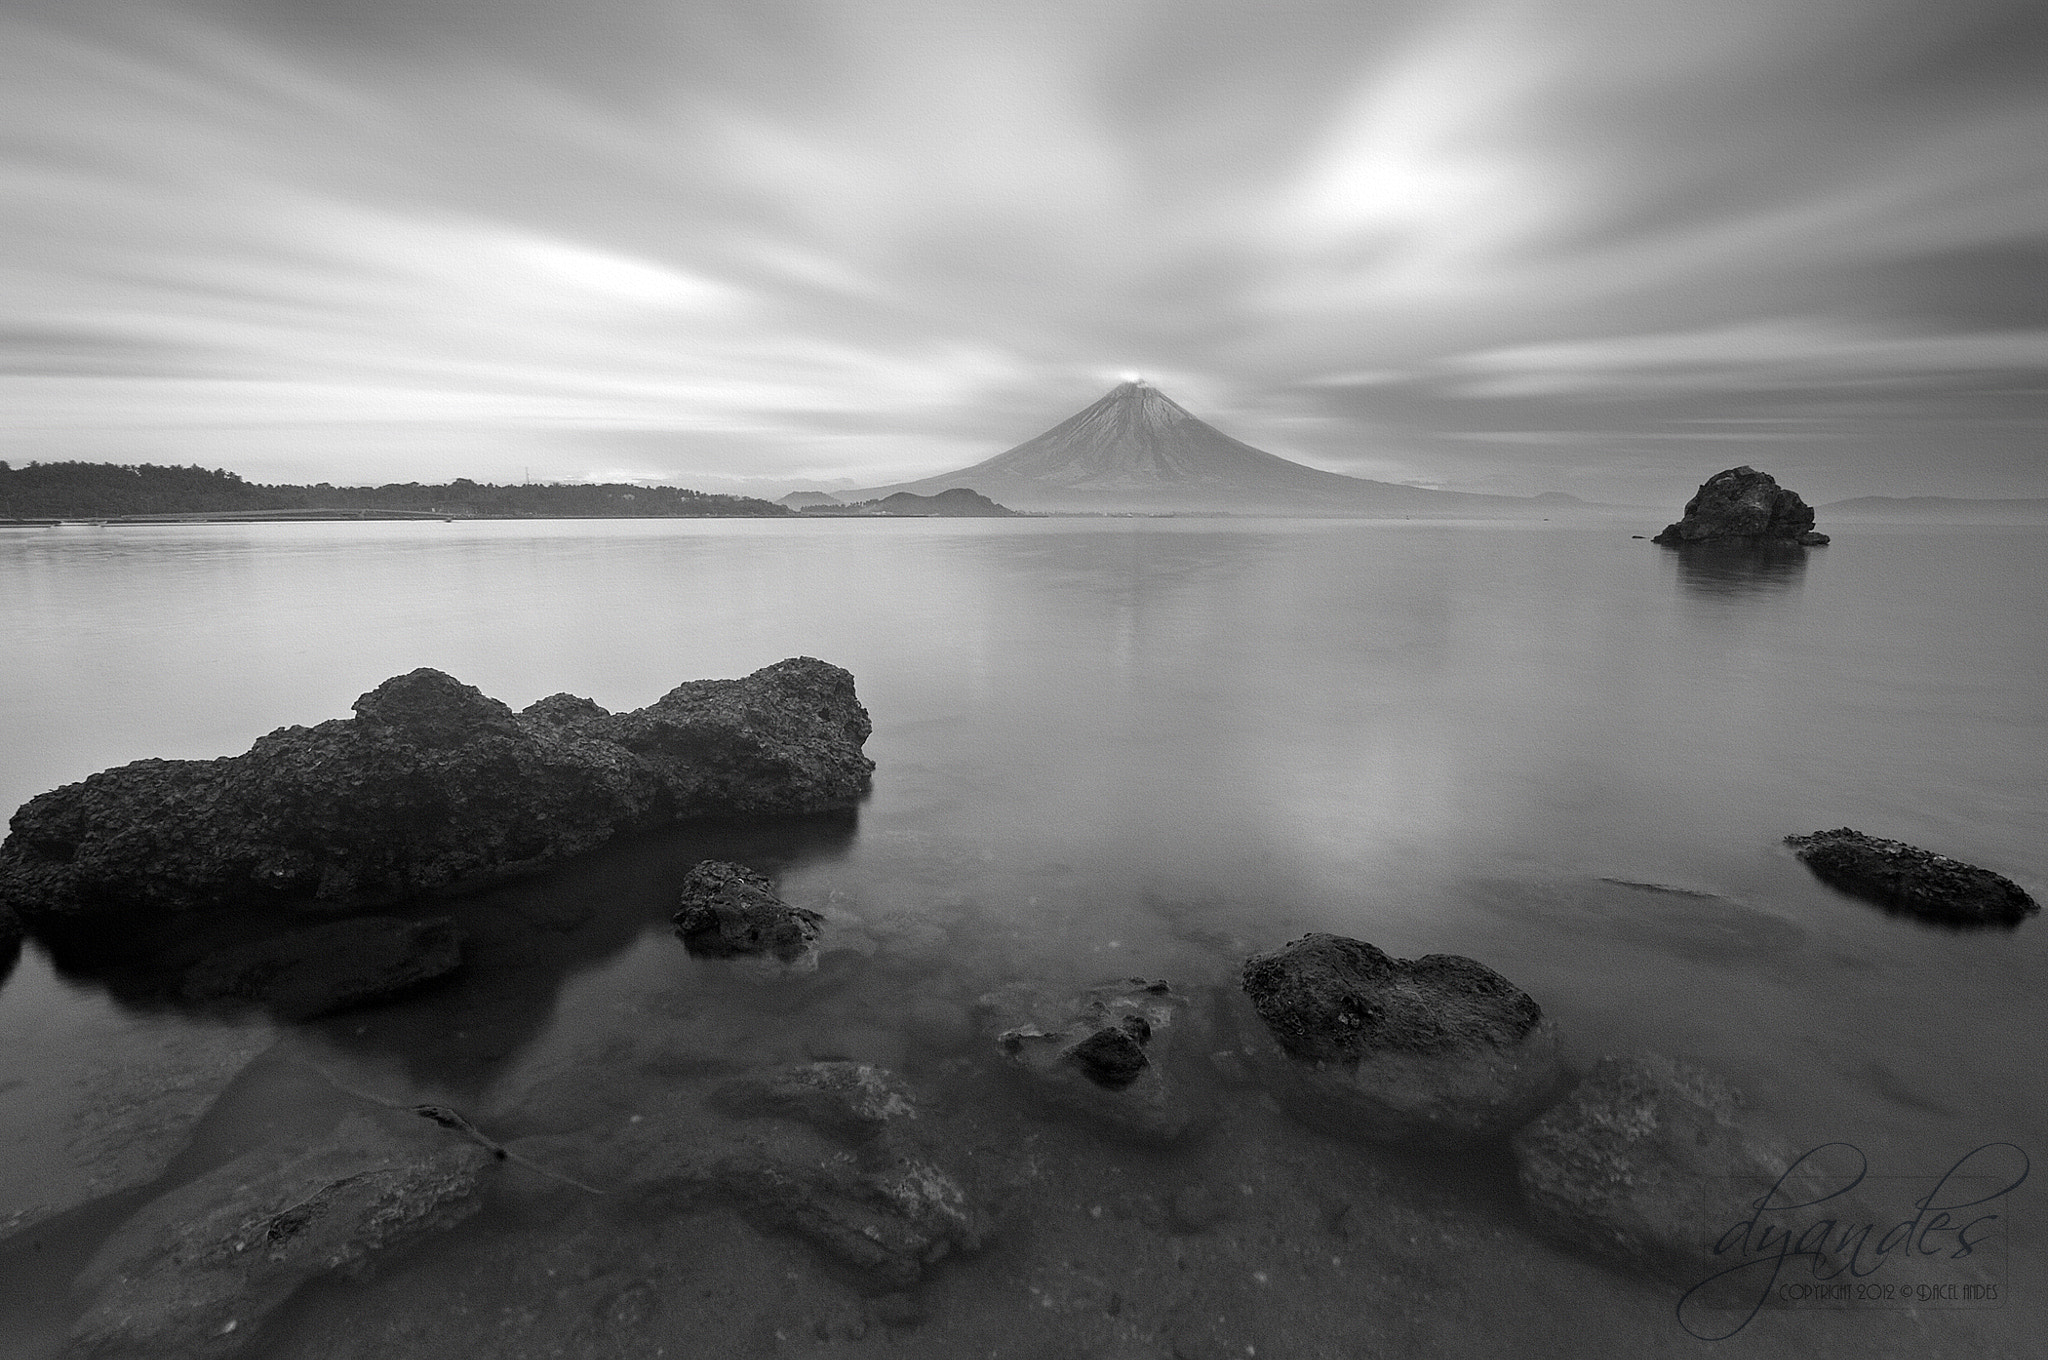 Photograph C a l m e d by Dacel Andes on 500px